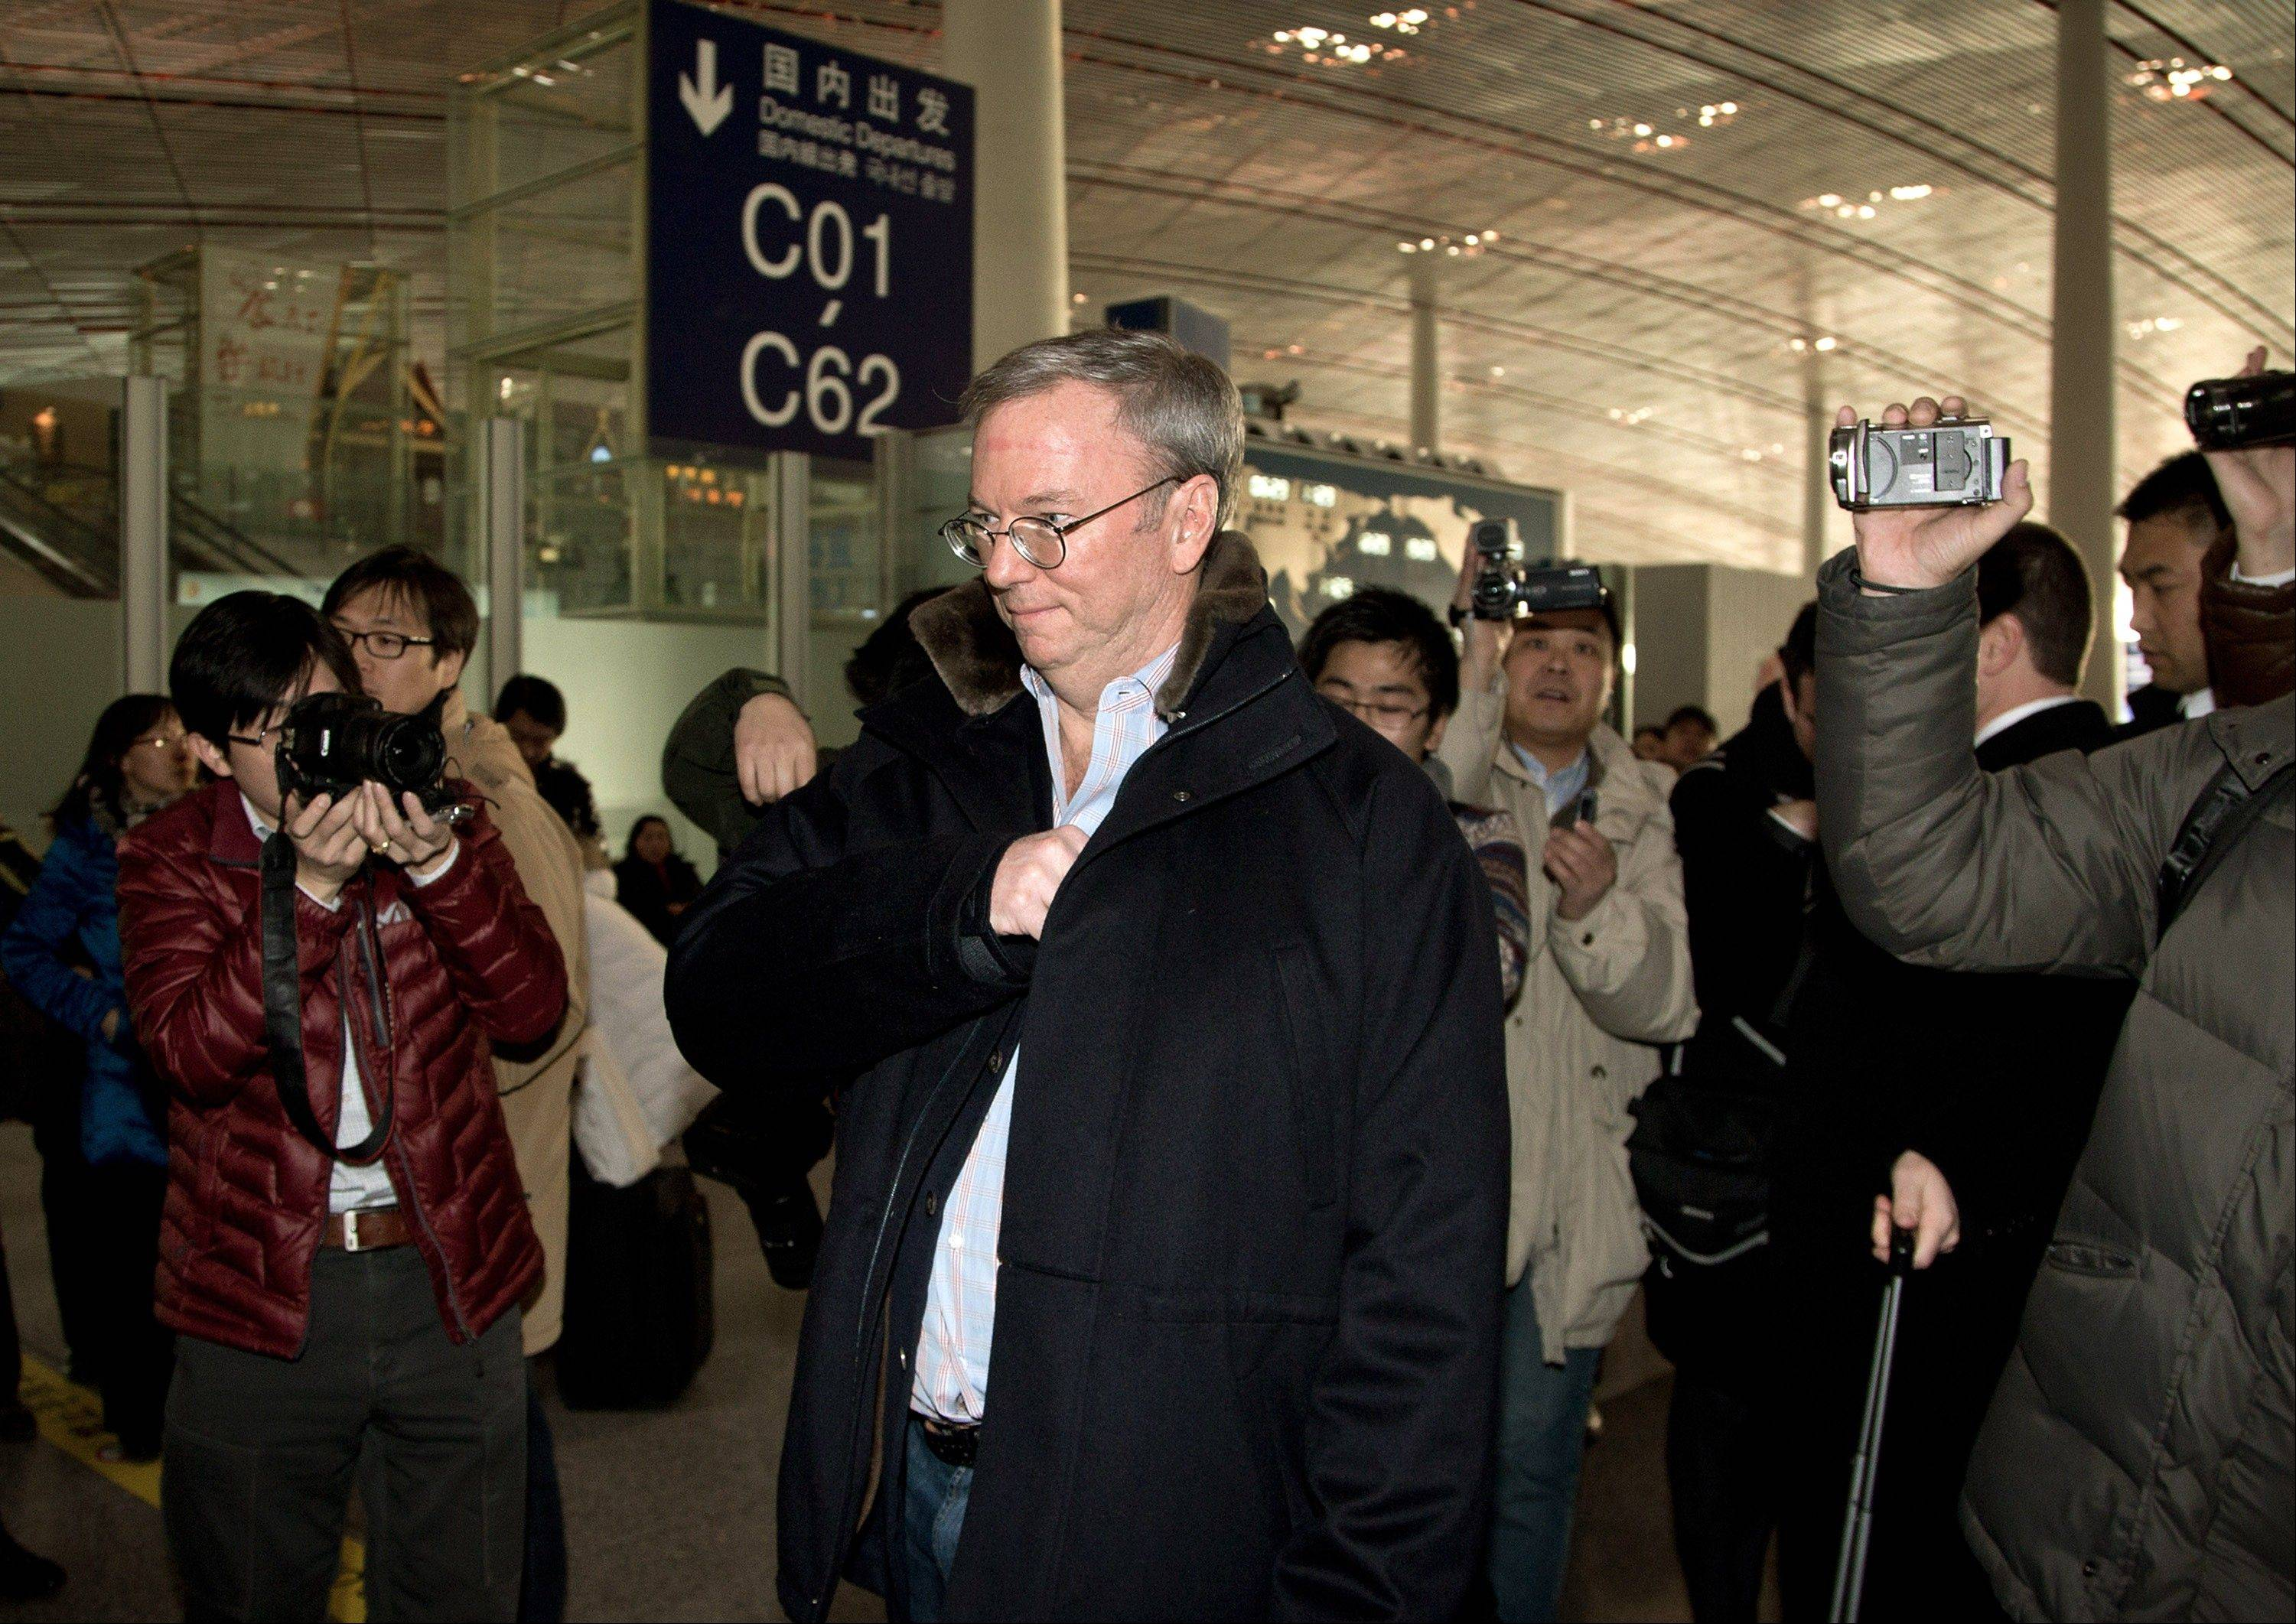 Google's executive chairman Eric Schmidt, center, is chased by journalists Monday as he prepares to check in at the Beijing Capital International Airport in Beijing. Schmidt is scheduled to leave Monday on a commercial flight bound for North Korea, a country considered to have the world's most restrictive Internet policies.